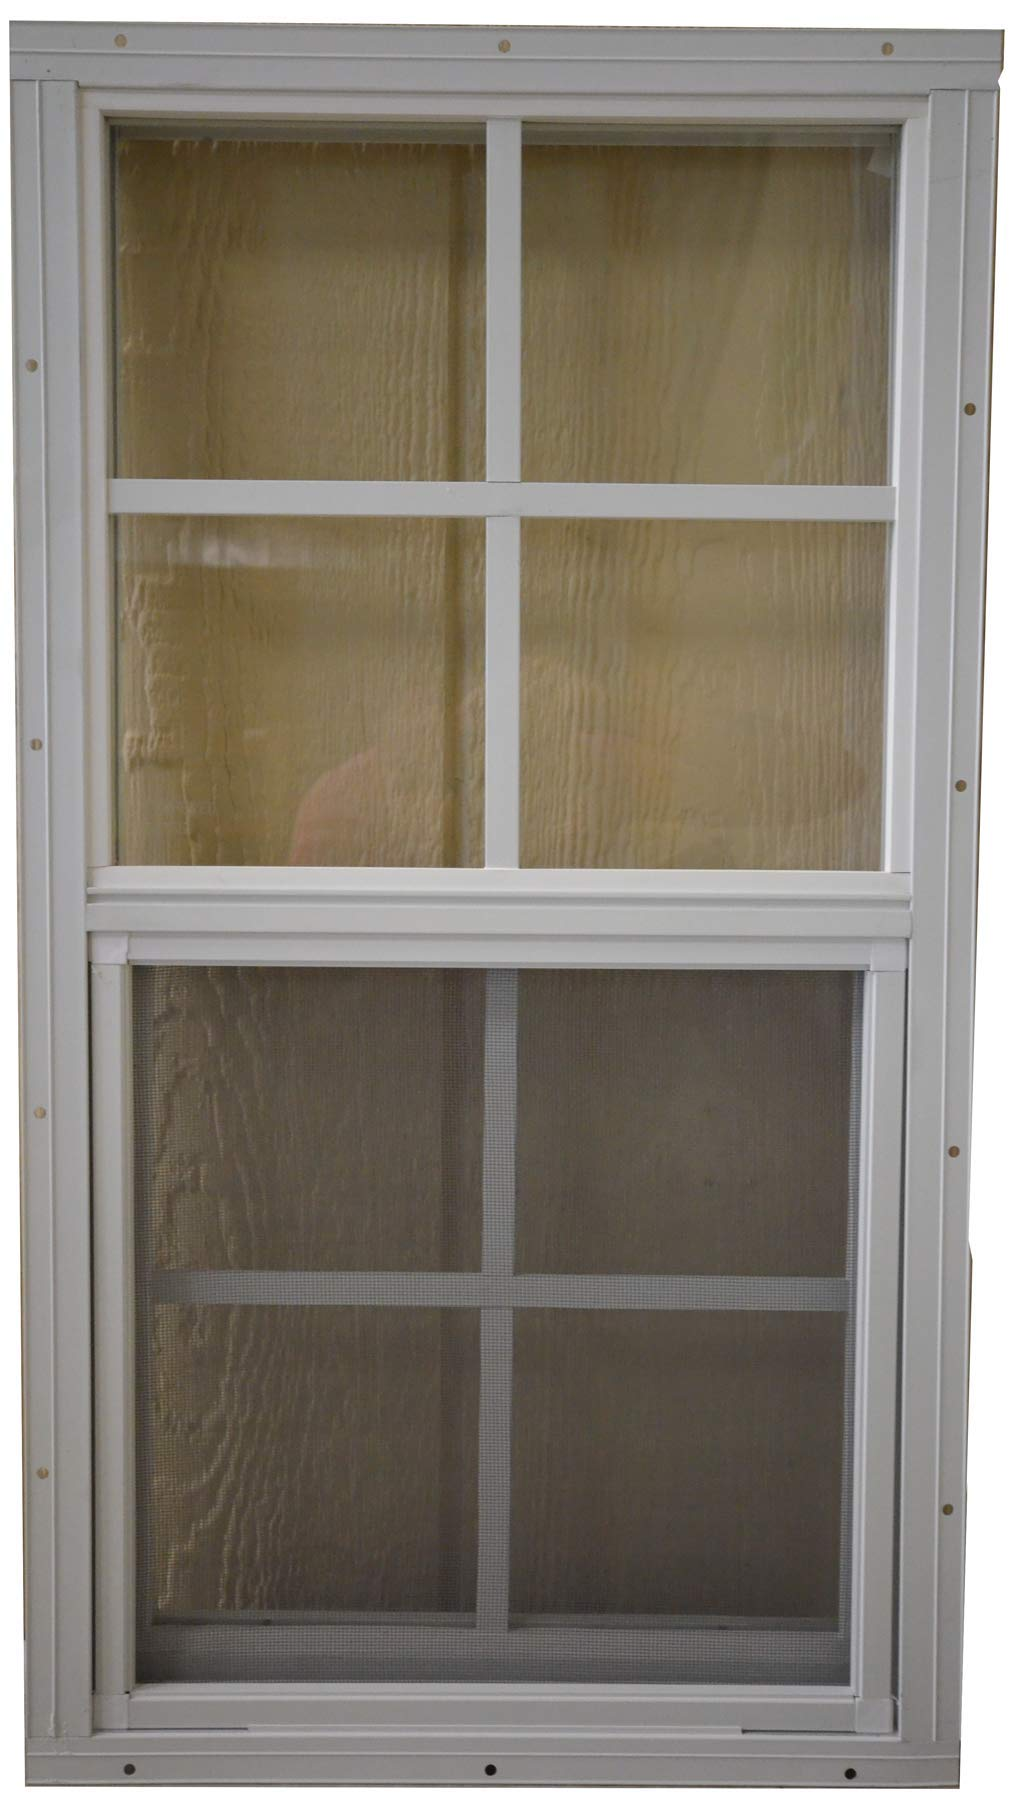 SHED PLAYHOUSE WINDOW-14X27-BROWN-FLUSH